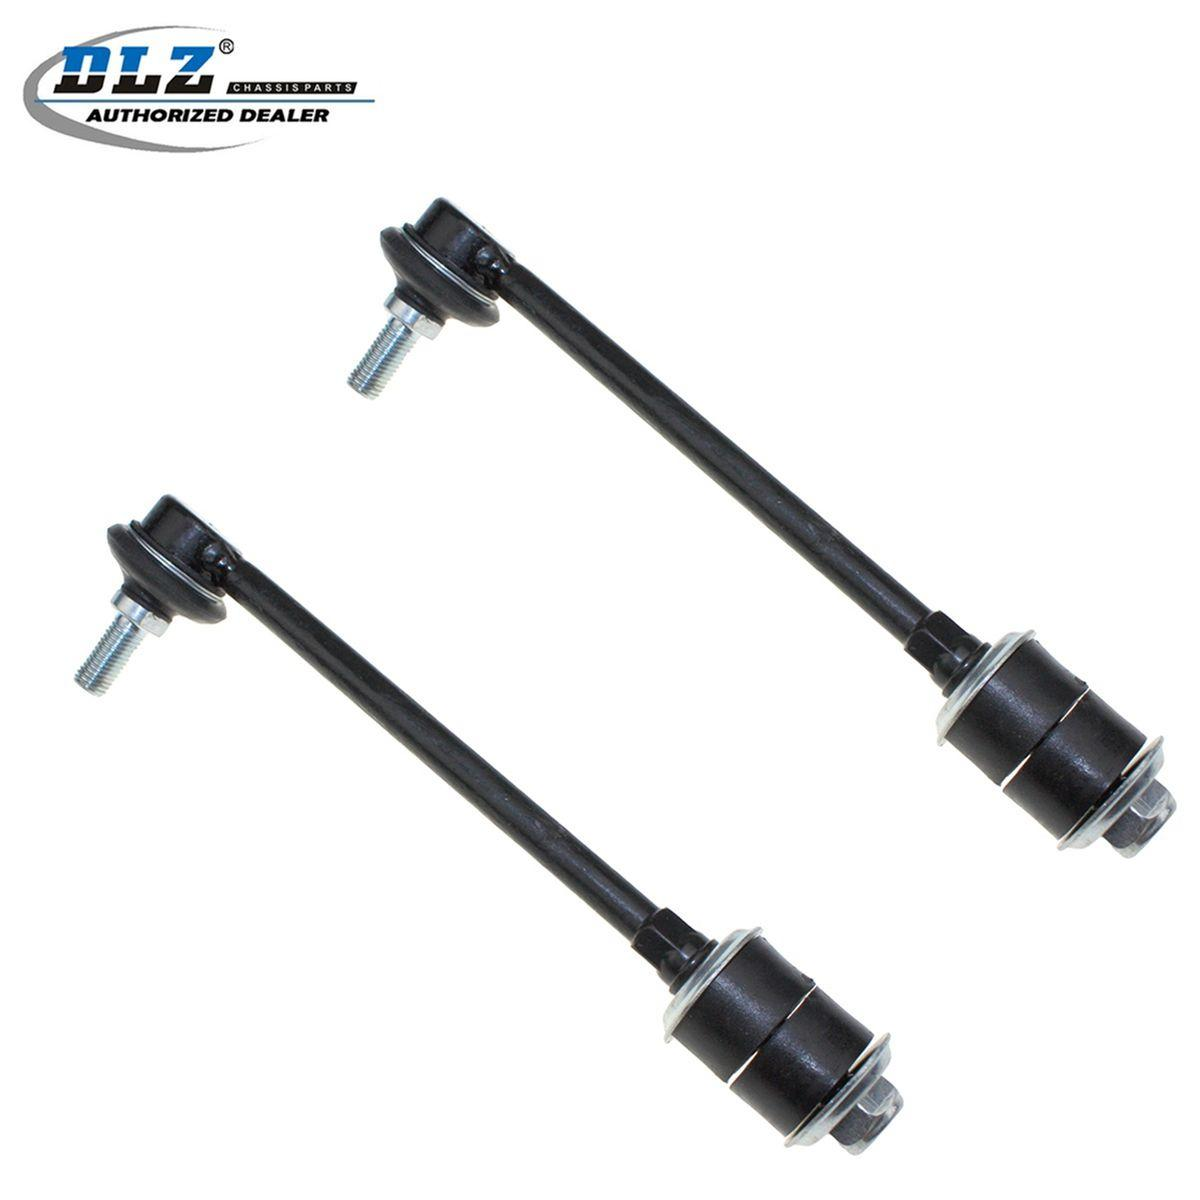 hight resolution of details about 2 suspension rear sway bar link for 1987 2004 nissan pathfinder pass driver side